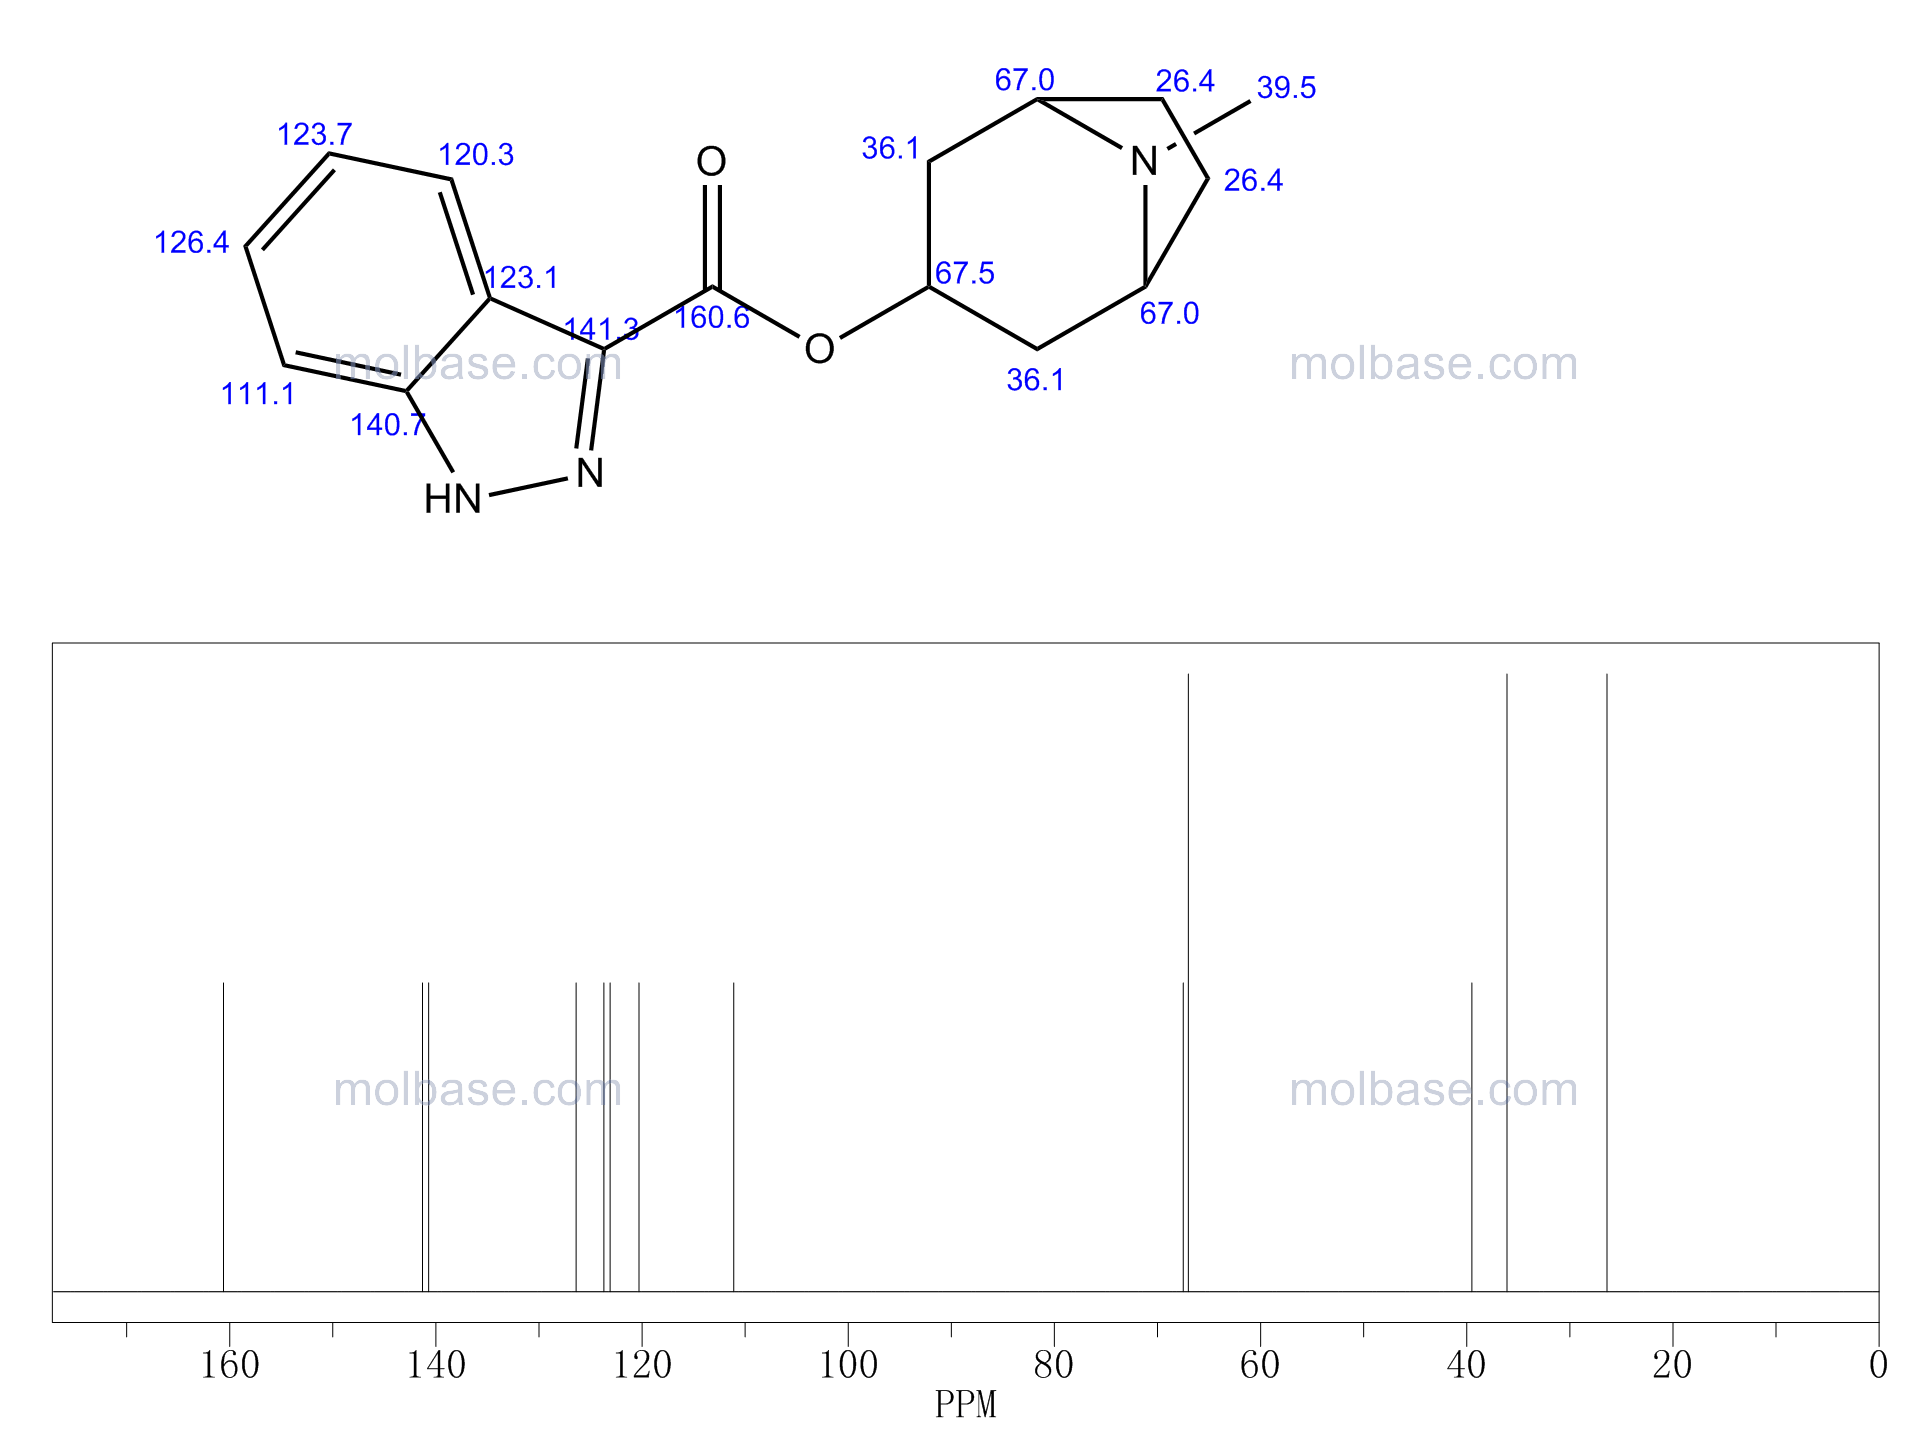 8-Methyl-8-azabicyclo[3.2.1]oct-3-yl 2H-indazole-3-carboxylate NMR spectra analysis, Chemical CAS NO. 107007-94-3 NMR spectral analysis, 8-Methyl-8-azabicyclo[3.2.1]oct-3-yl 2H-indazole-3-carboxylate C-NMR spectrum